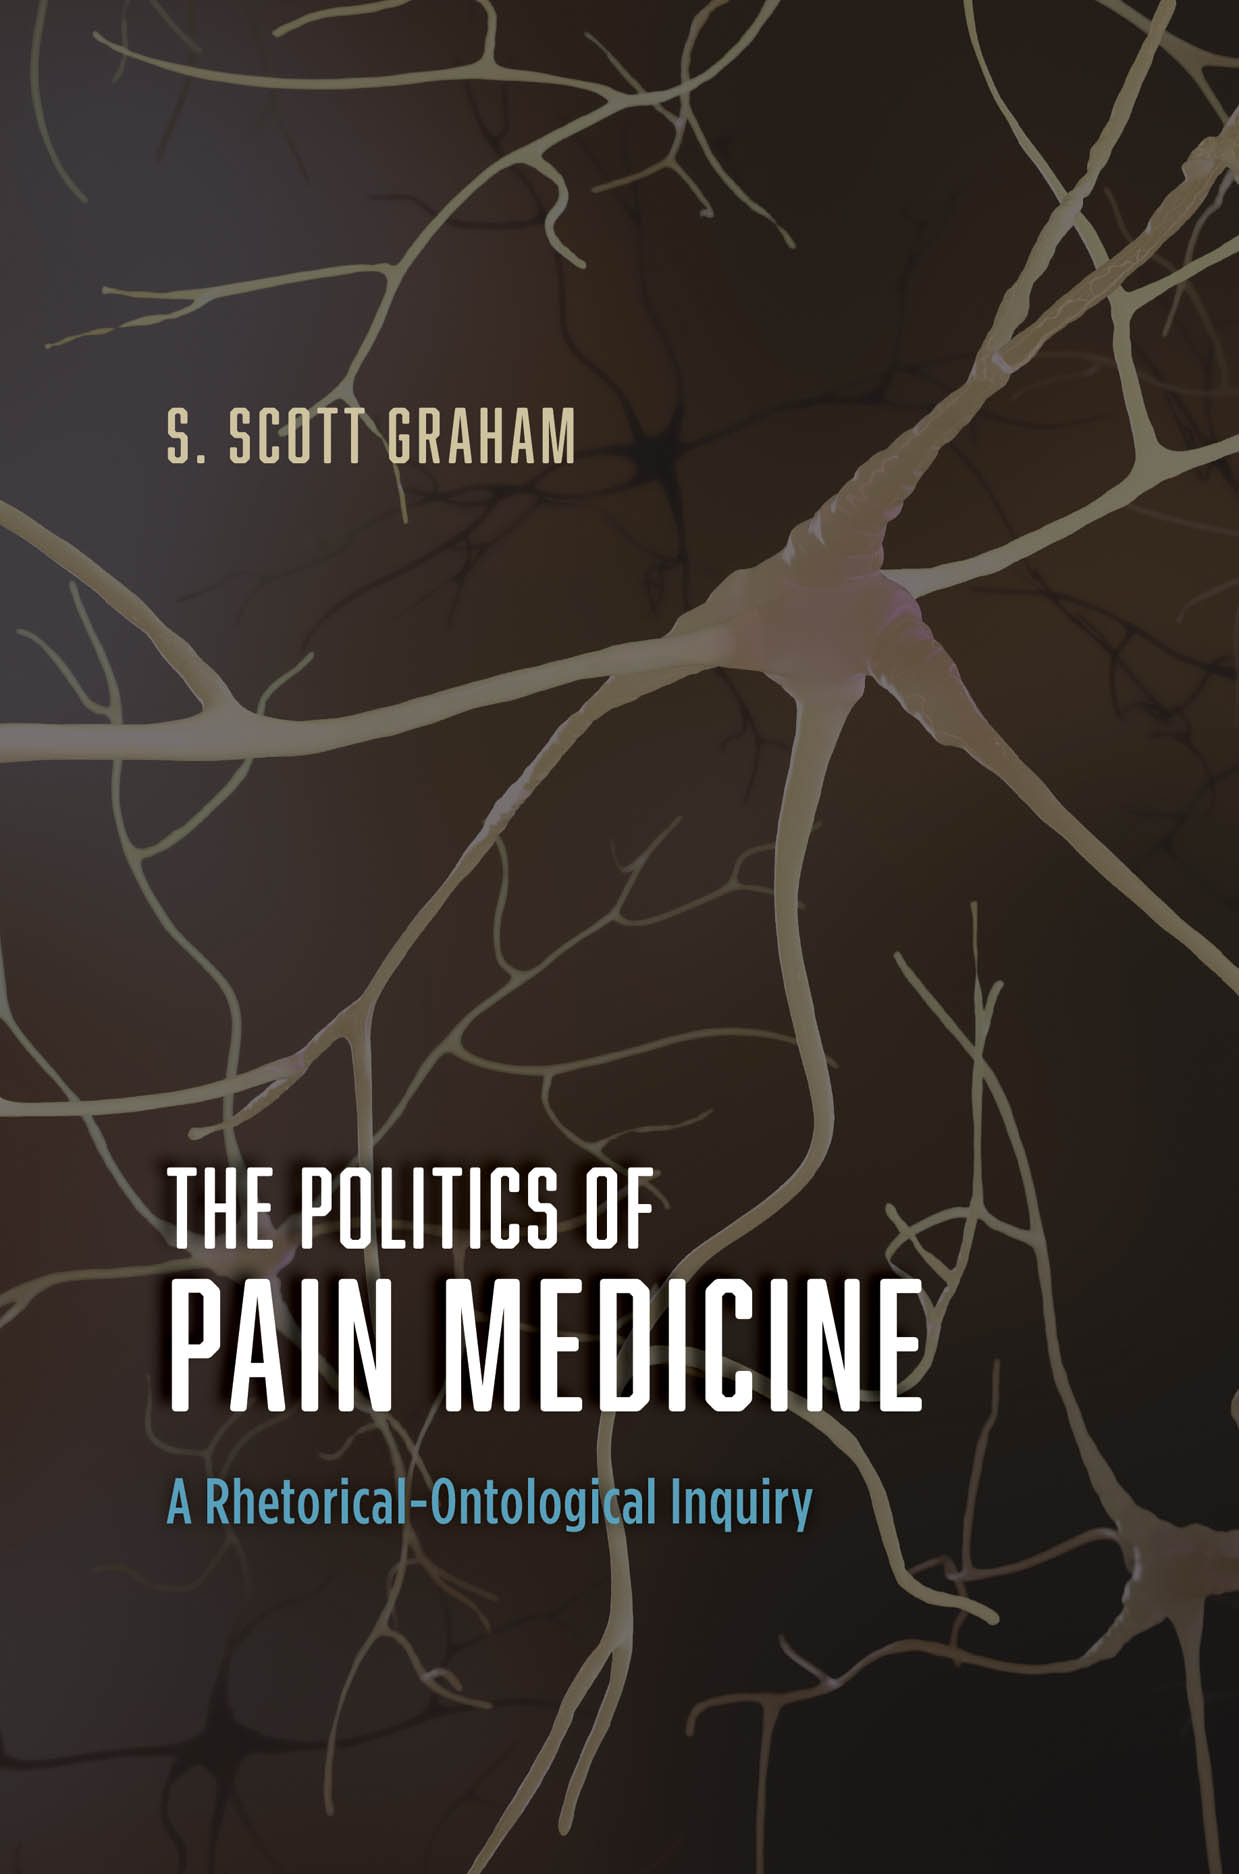 The Politics of Pain Medicine: A Rhetorical-Ontological Inquiry